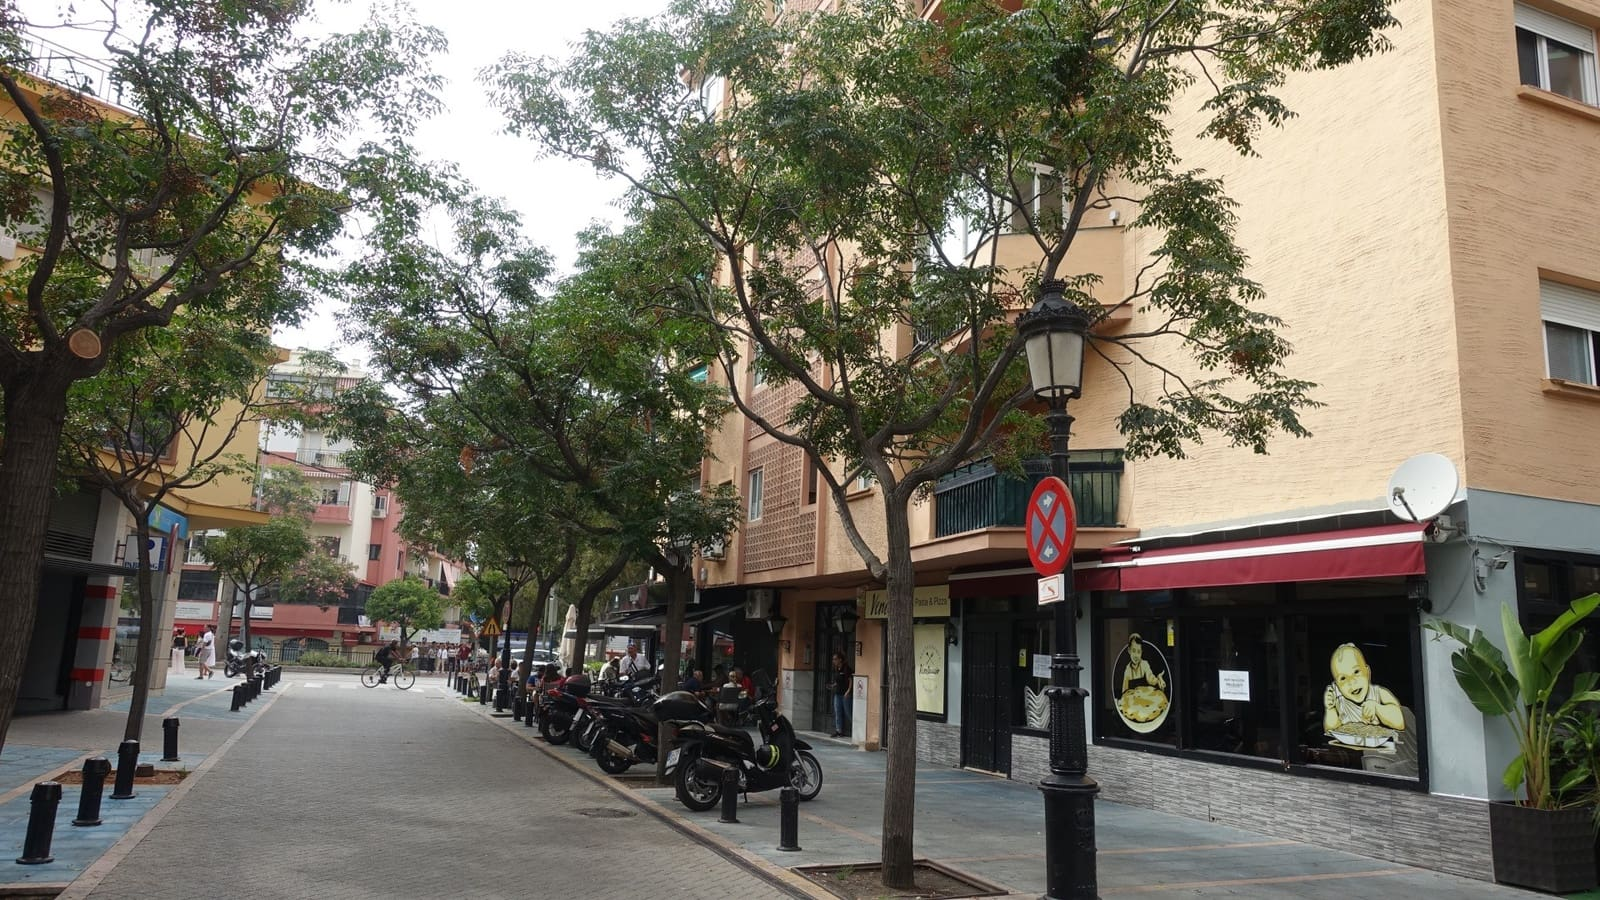 Commercial for sale in Marbella - € 199,500 (Ref: 4772159)